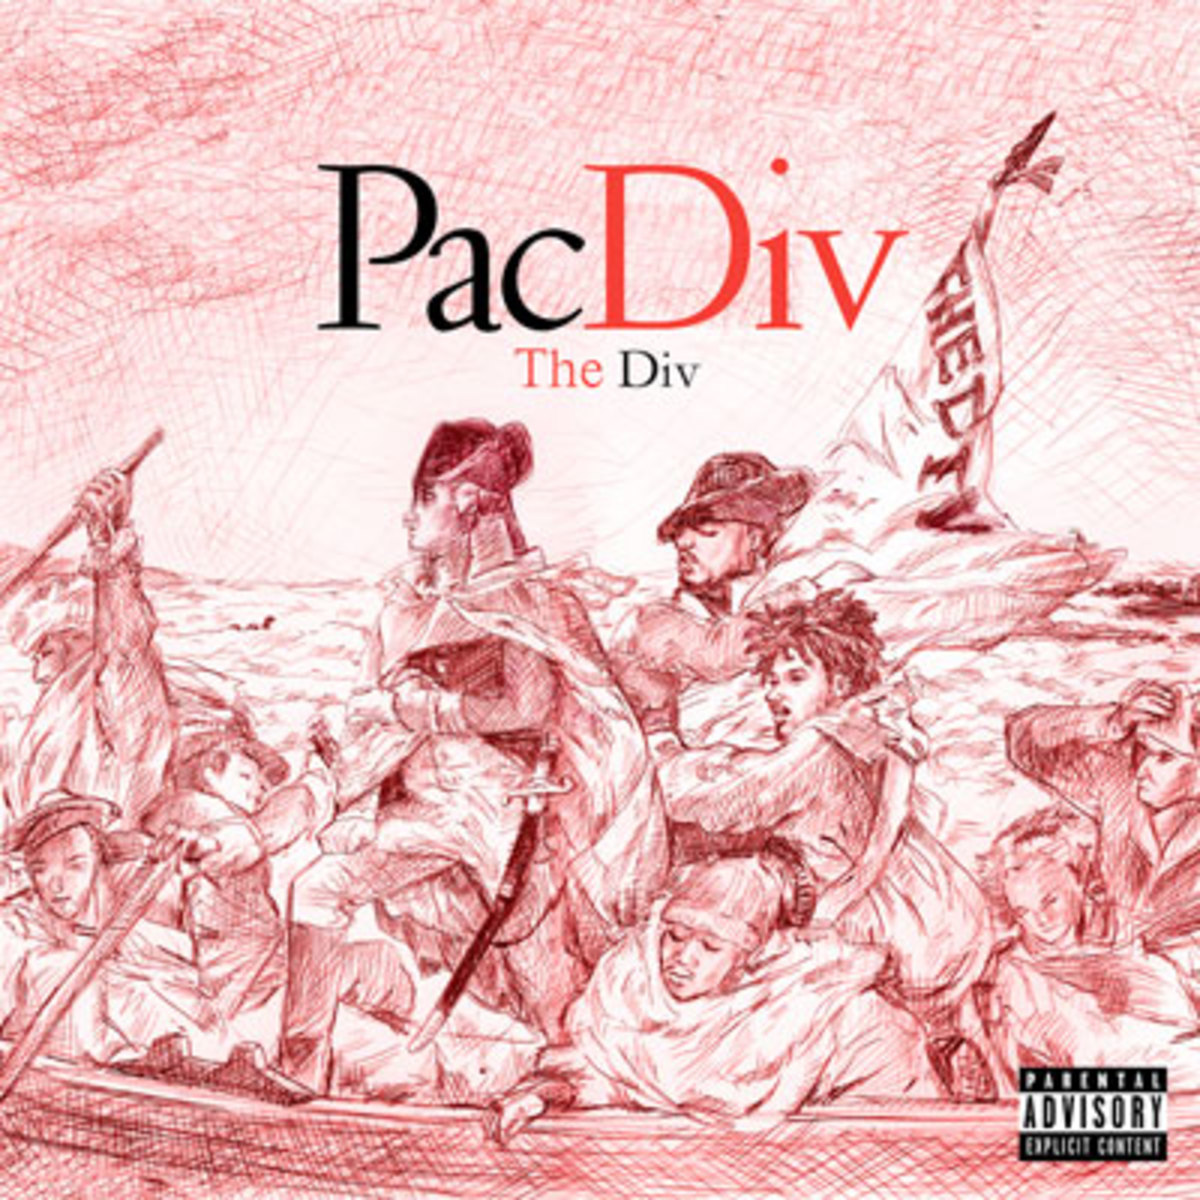 pacdiv-thediv.jpg